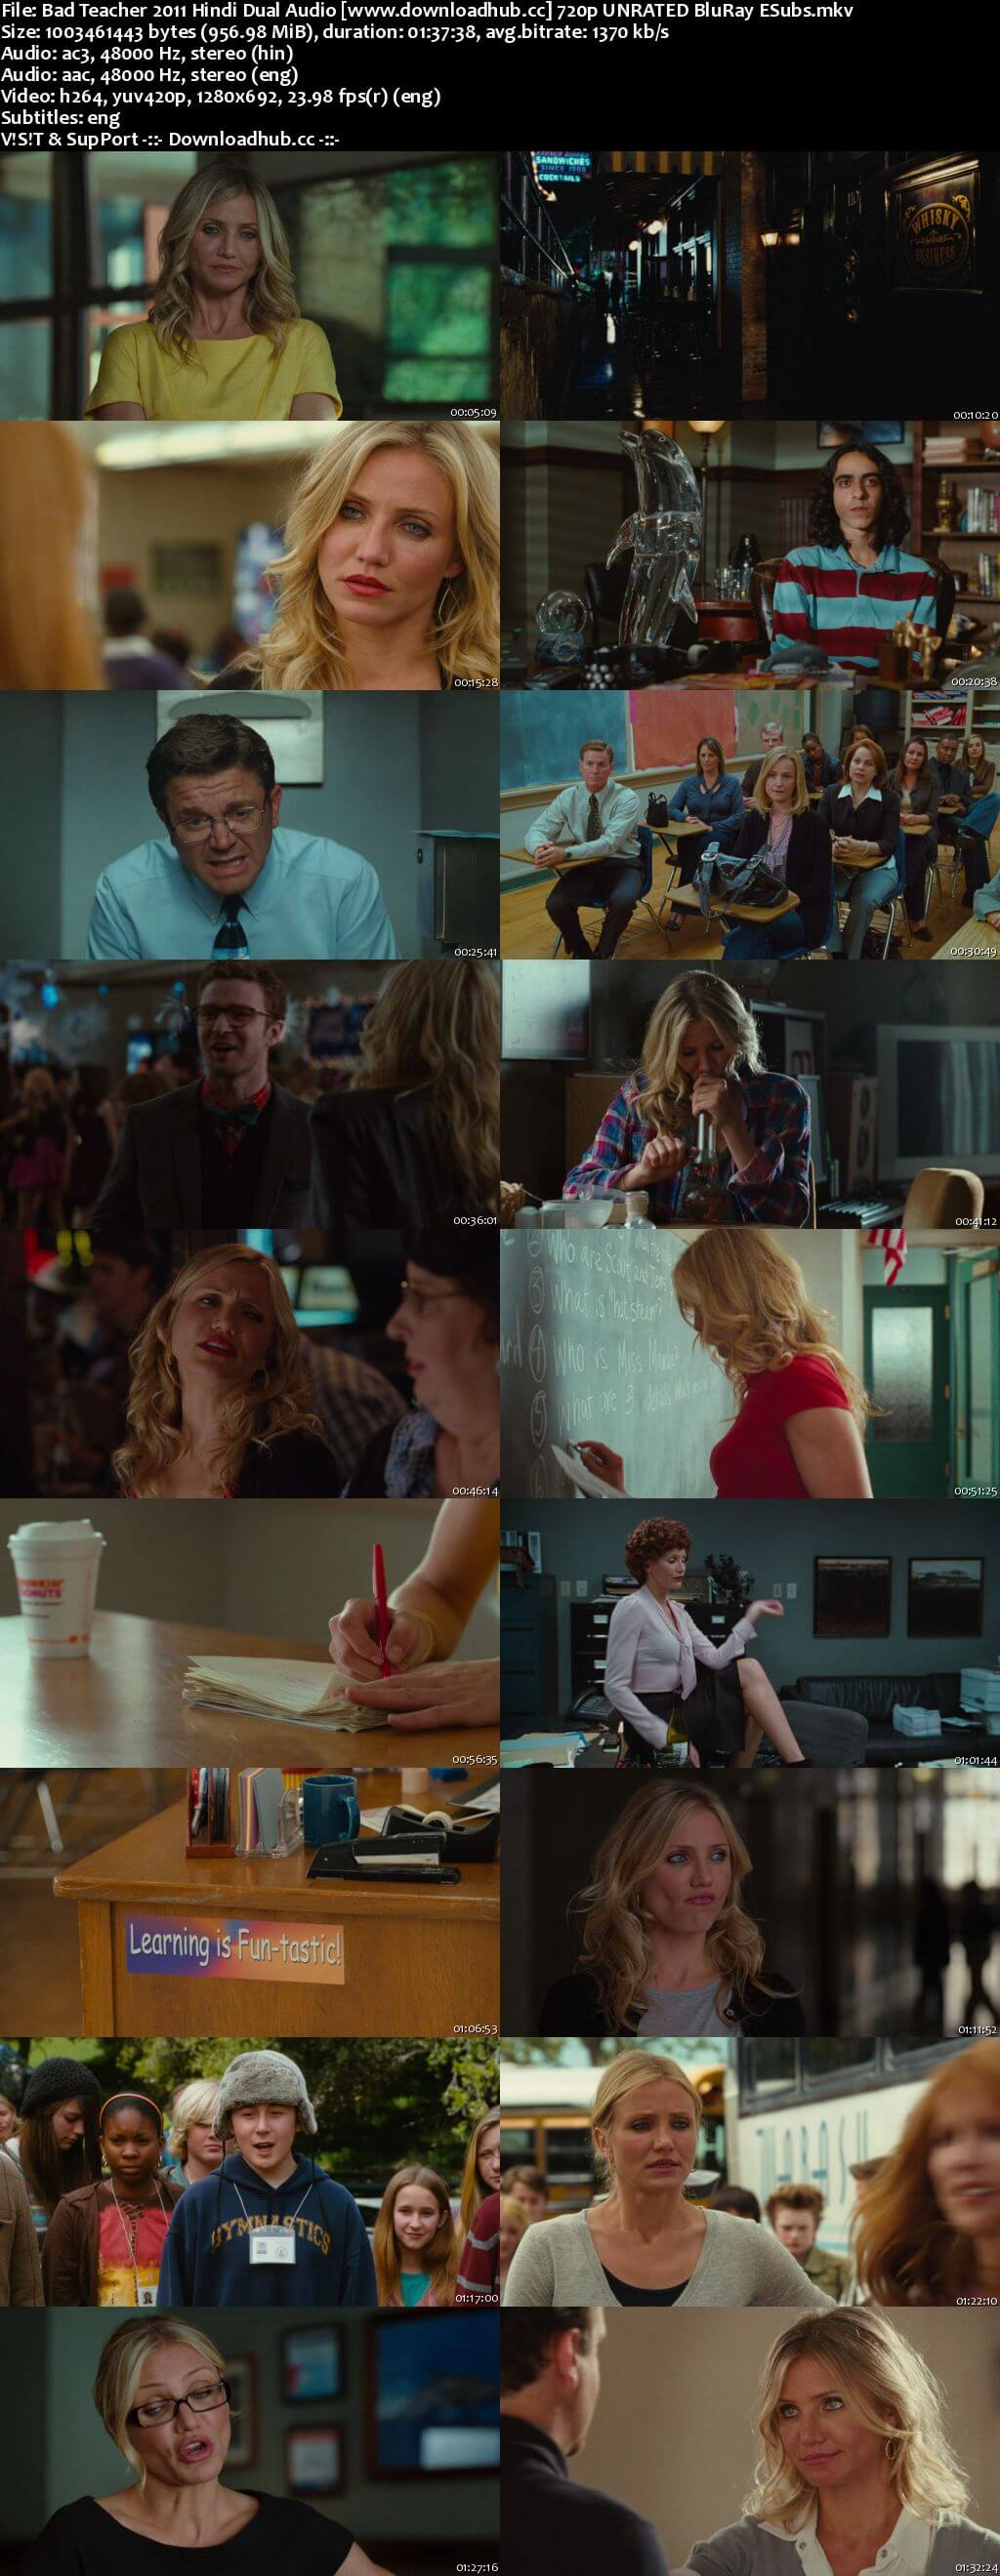 Bad Teacher 2011 Hindi Dual Audio 720p UNRATED BluRay ESubs